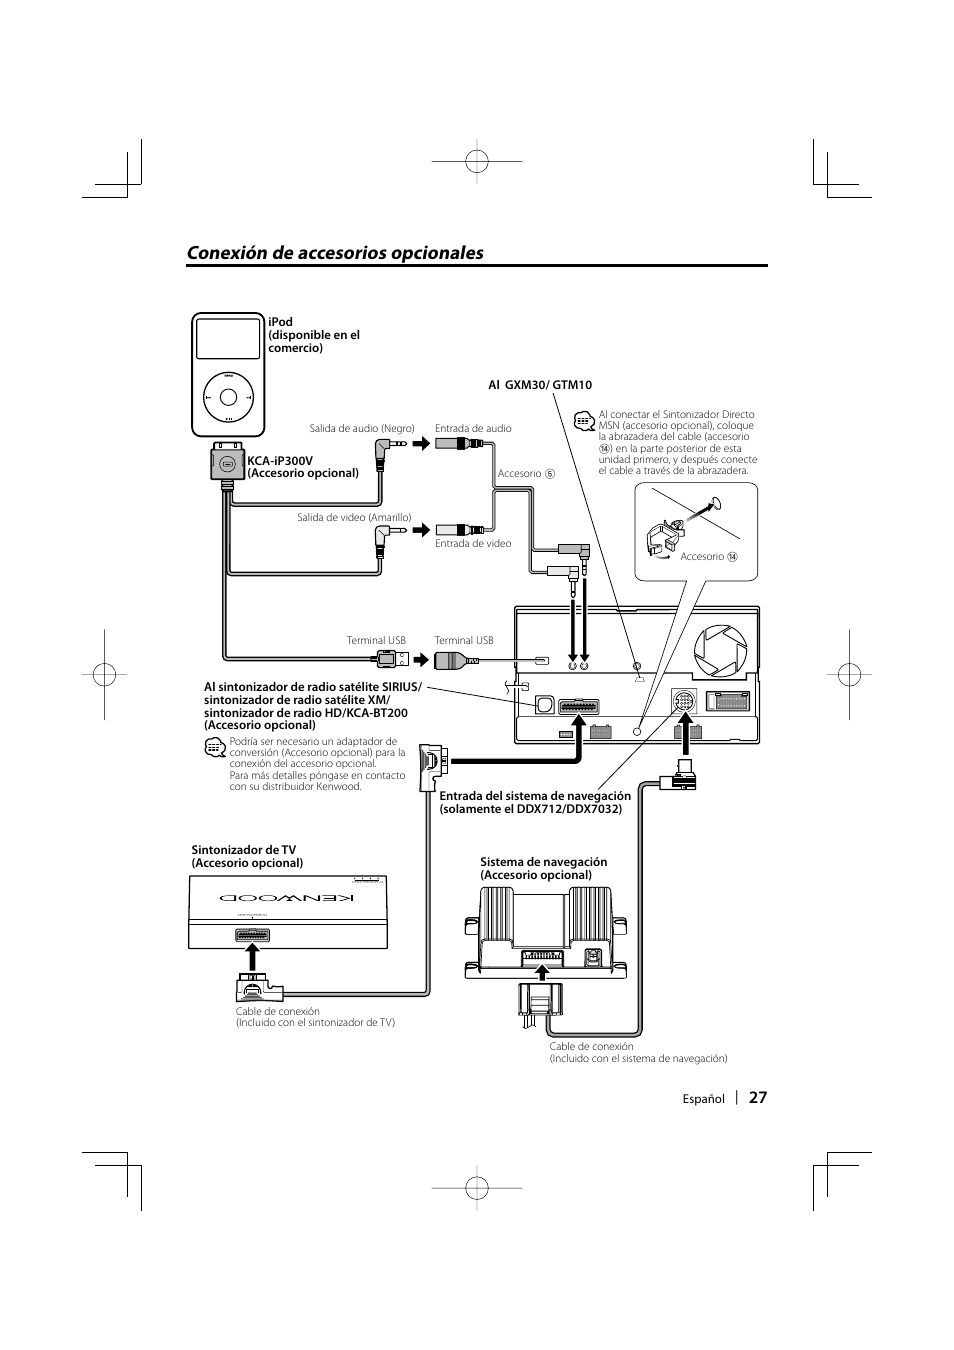 Radio Wiring Diagram For Kenwood Dnx7120 further Rx7 Wiring Diagram further Stanley Gate Operator Wiring Diagram additionally Wiring Diagram Car Head Unit together with Basic Electrical Wiring Diagram Pdf. on wiring diagram mazda stereo harness new car